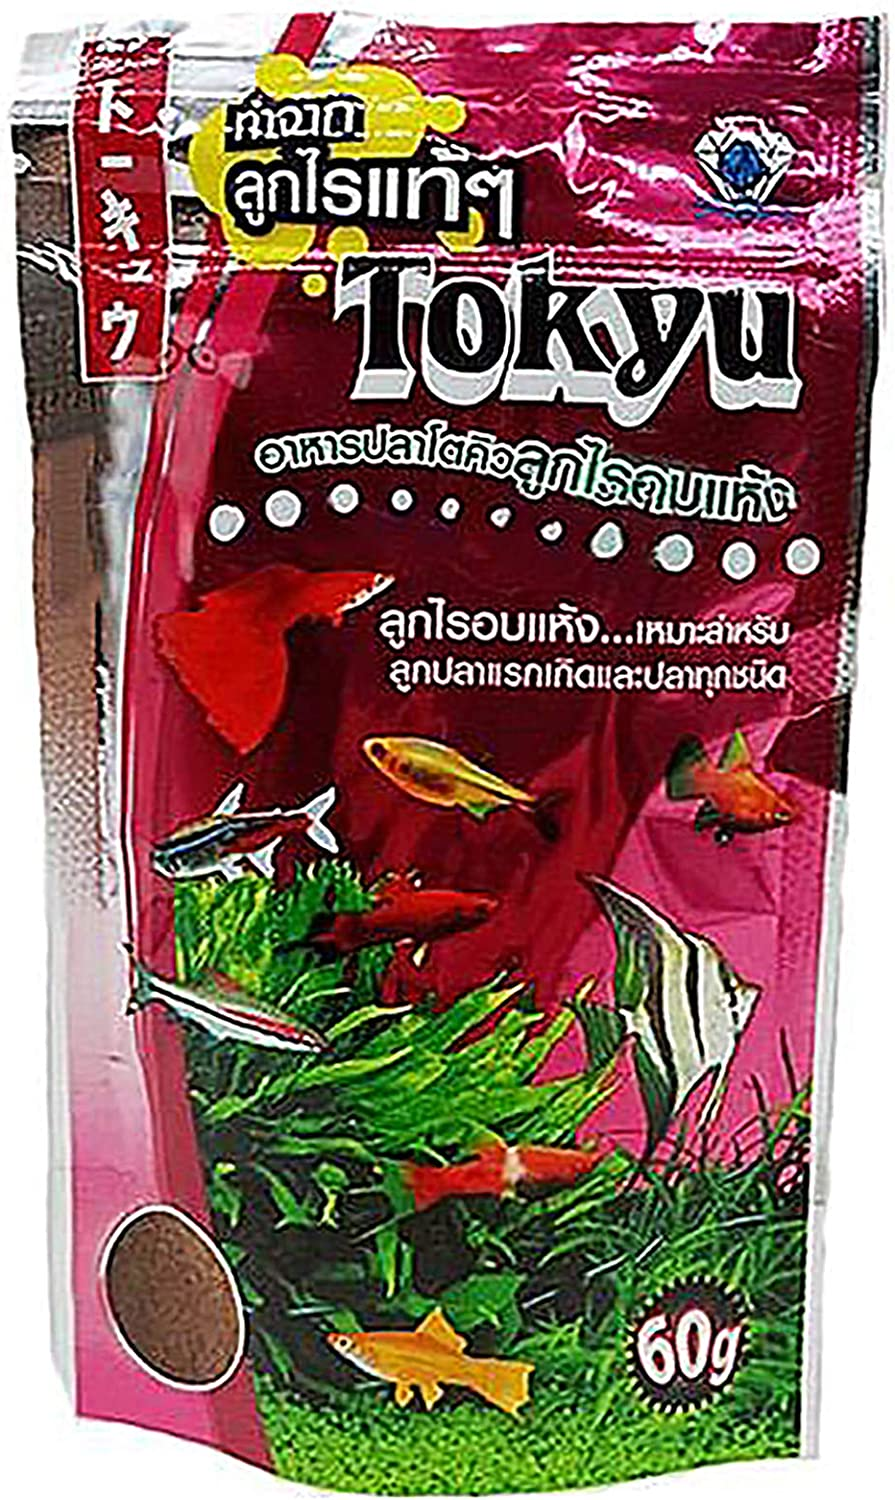 Tyoku Fish Food (Dry Moina Macrocopa) Mini Floating Pellets 60 g. High Protein 61-70% Guppy & All Tropical Fish Food for Feed Baby Fry Fish Small Fish, Color Enhancing, Growth Fast Formula Fish Feed